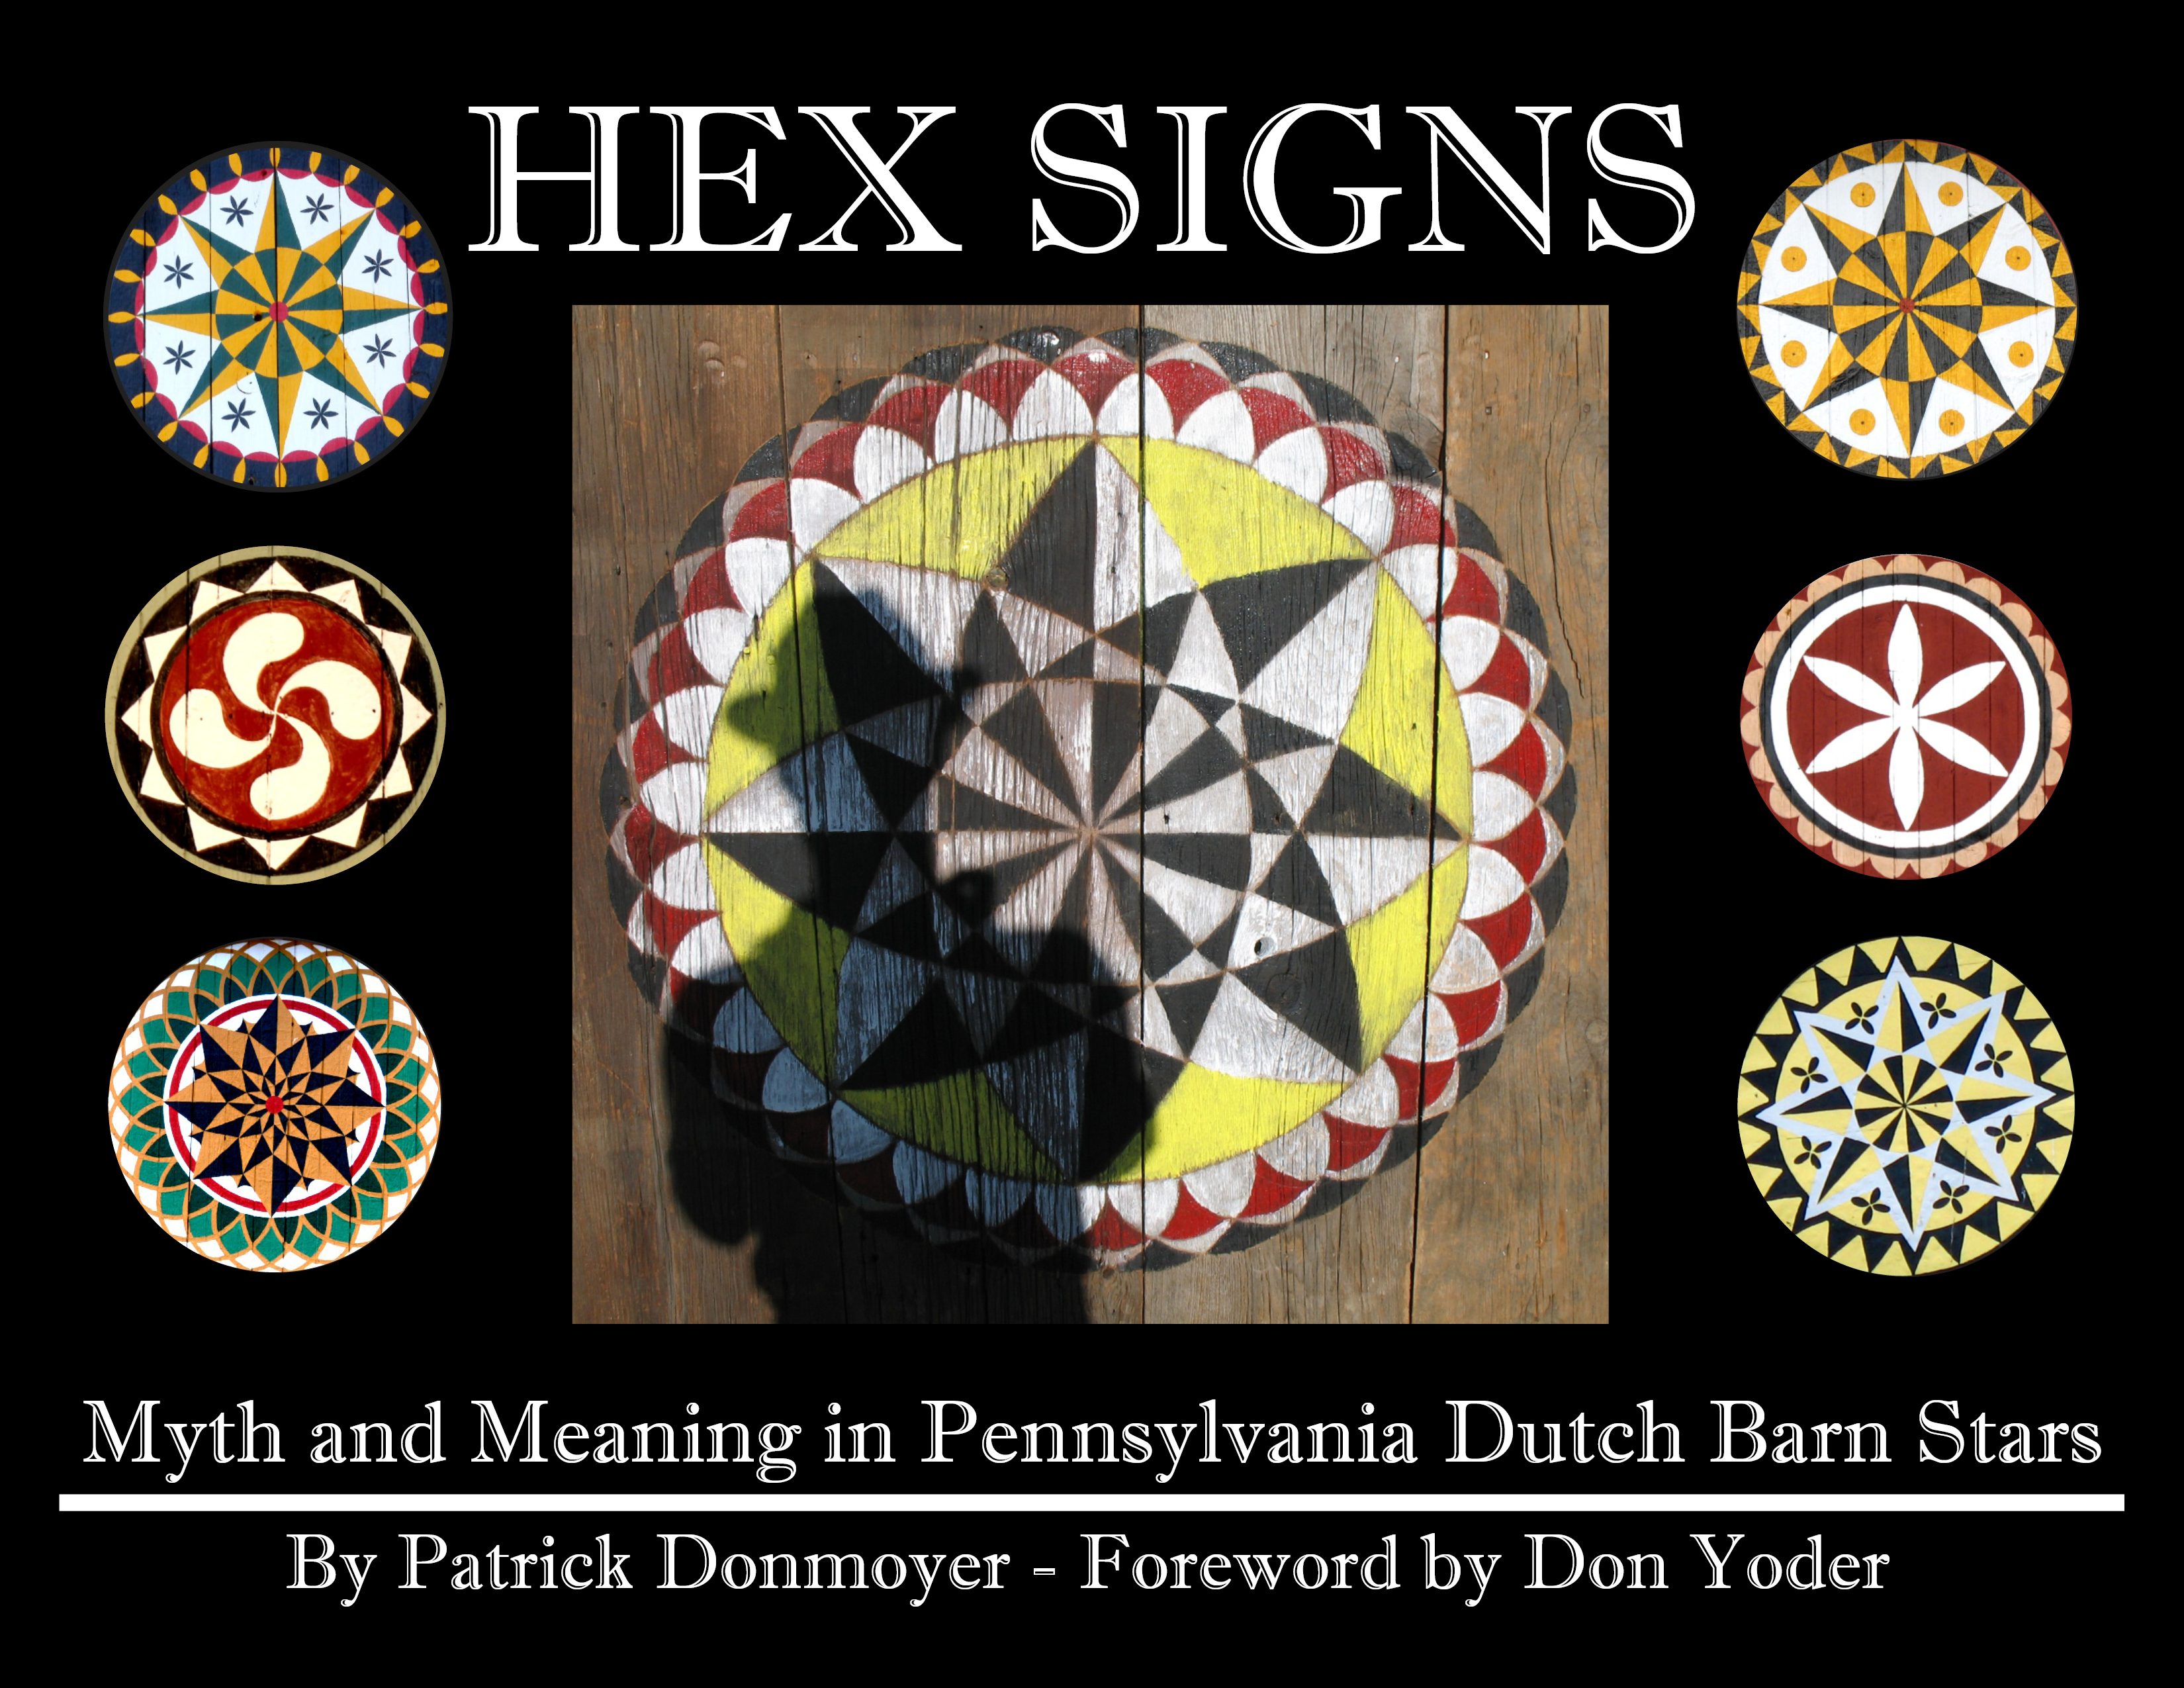 Front Cover: Black background with 6 Hex Signs (or barn stars) with the center image of a Hex Sign with a person's silhouette in the left-hand side.